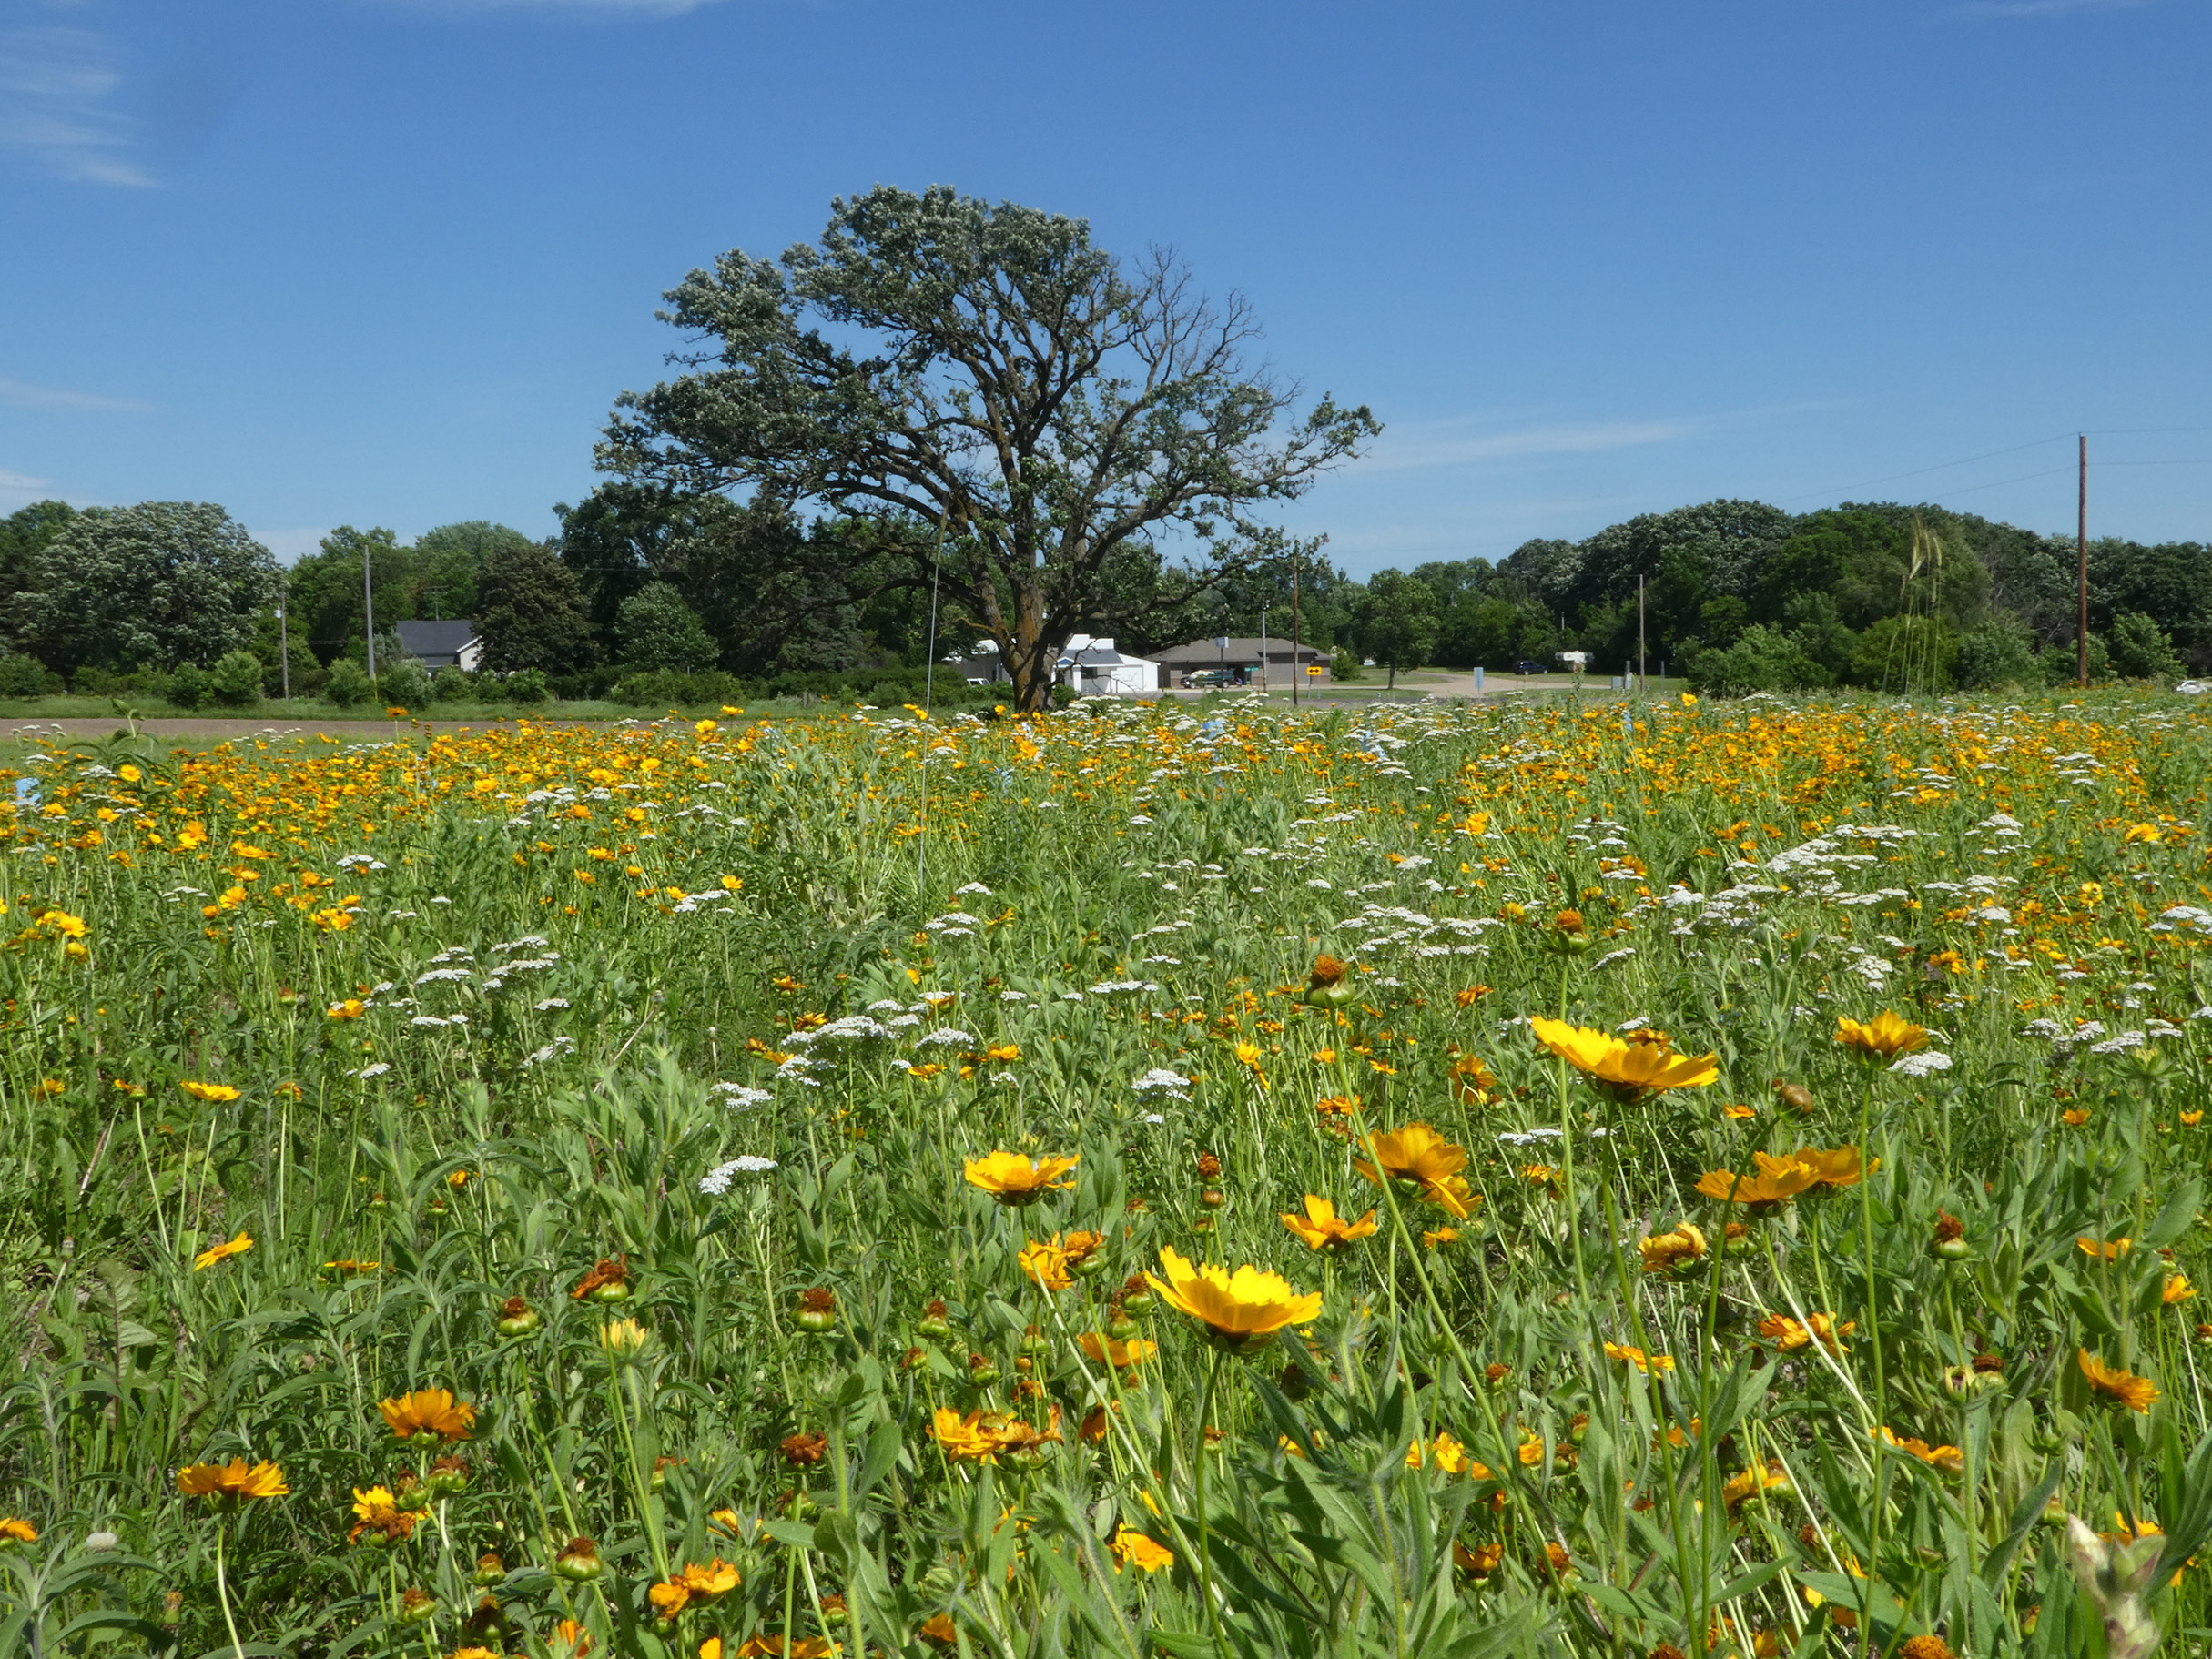 A field of yellow and white wildflowers bloom in the sunshine. A spreading tree and farm building are in the background.